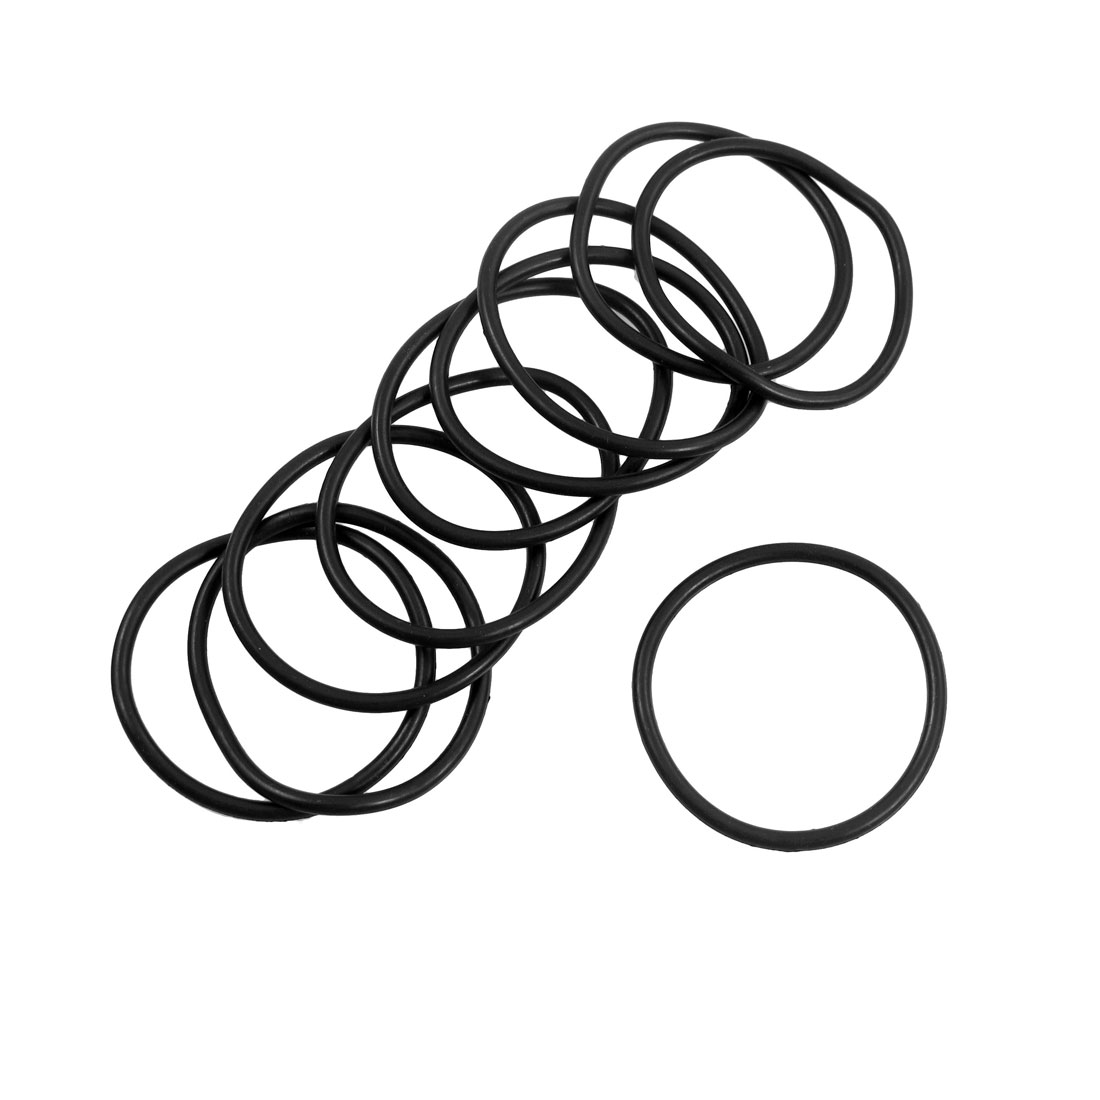 10 Pcs 31mm Outside Dia 2mm Thick Rubber O Rings Gaskets Black